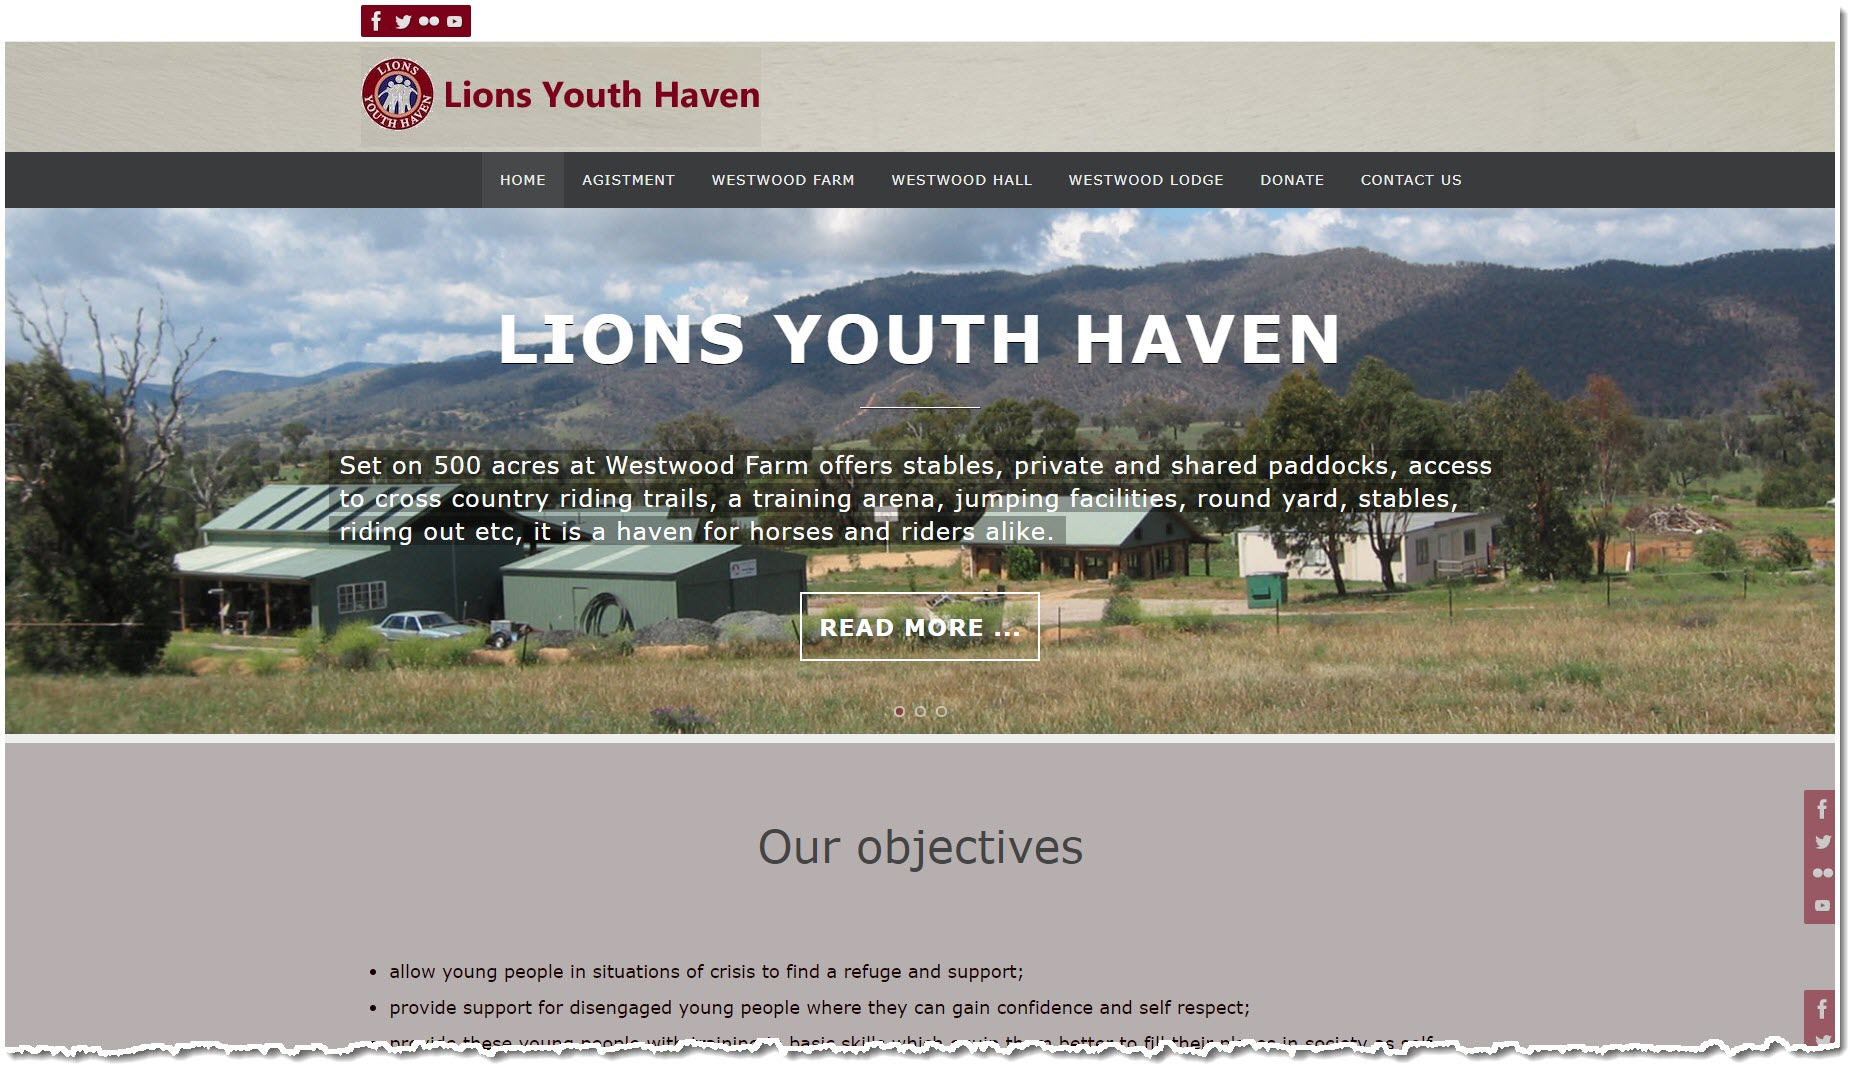 Lions Youth Haven